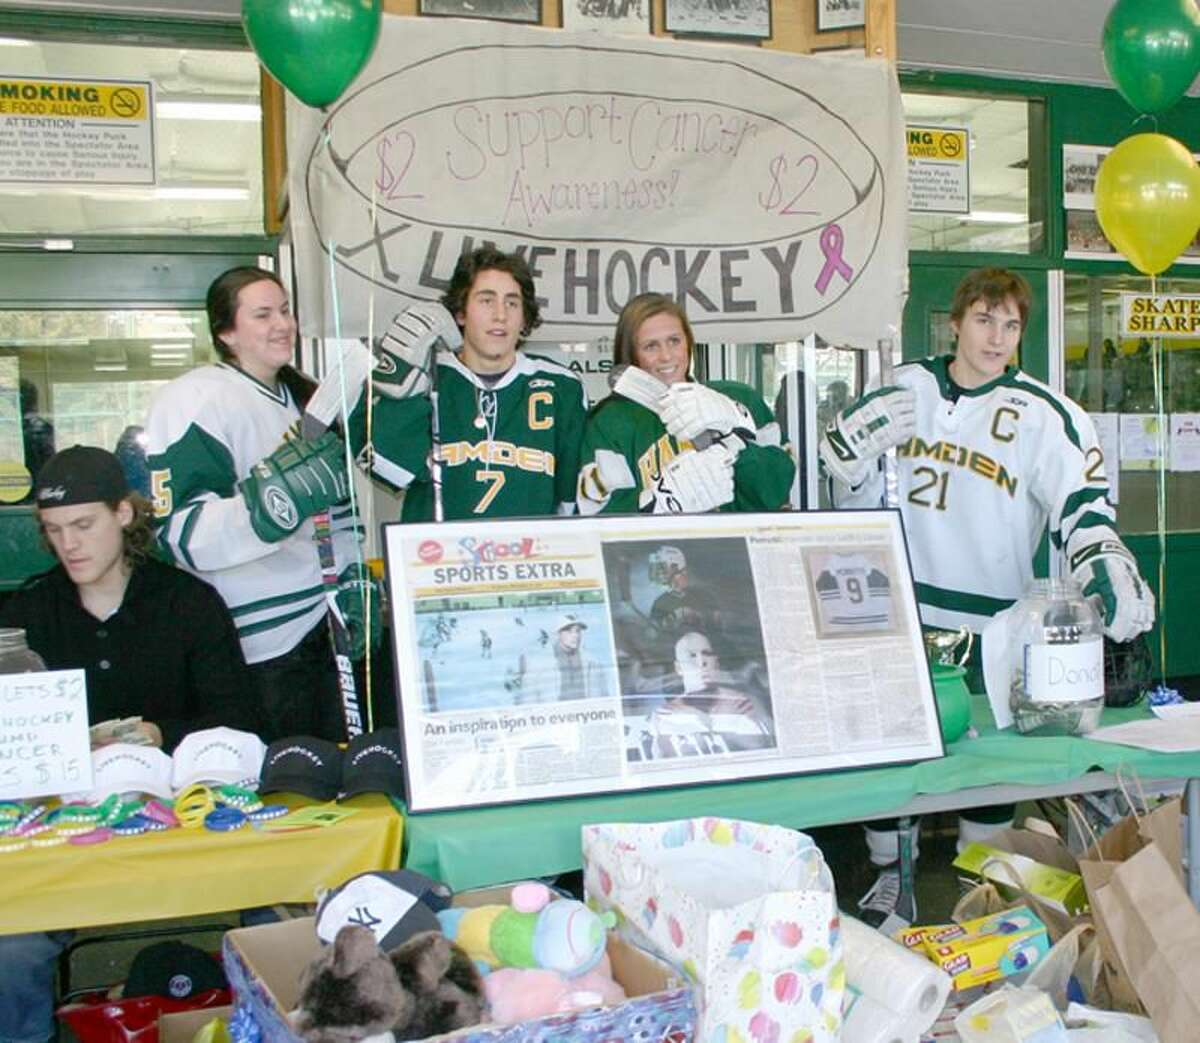 """Pictured from left to right with donations are: Mike Dalhuisen from """"LIVEHOCKEY,"""" girls assistant captain Emily Orser, and boys and girls captains P.J. Vakos, LeeAnn Esposito, and John Teulings. Bobby Ugolik was the program chairman. (Submitted photo)"""